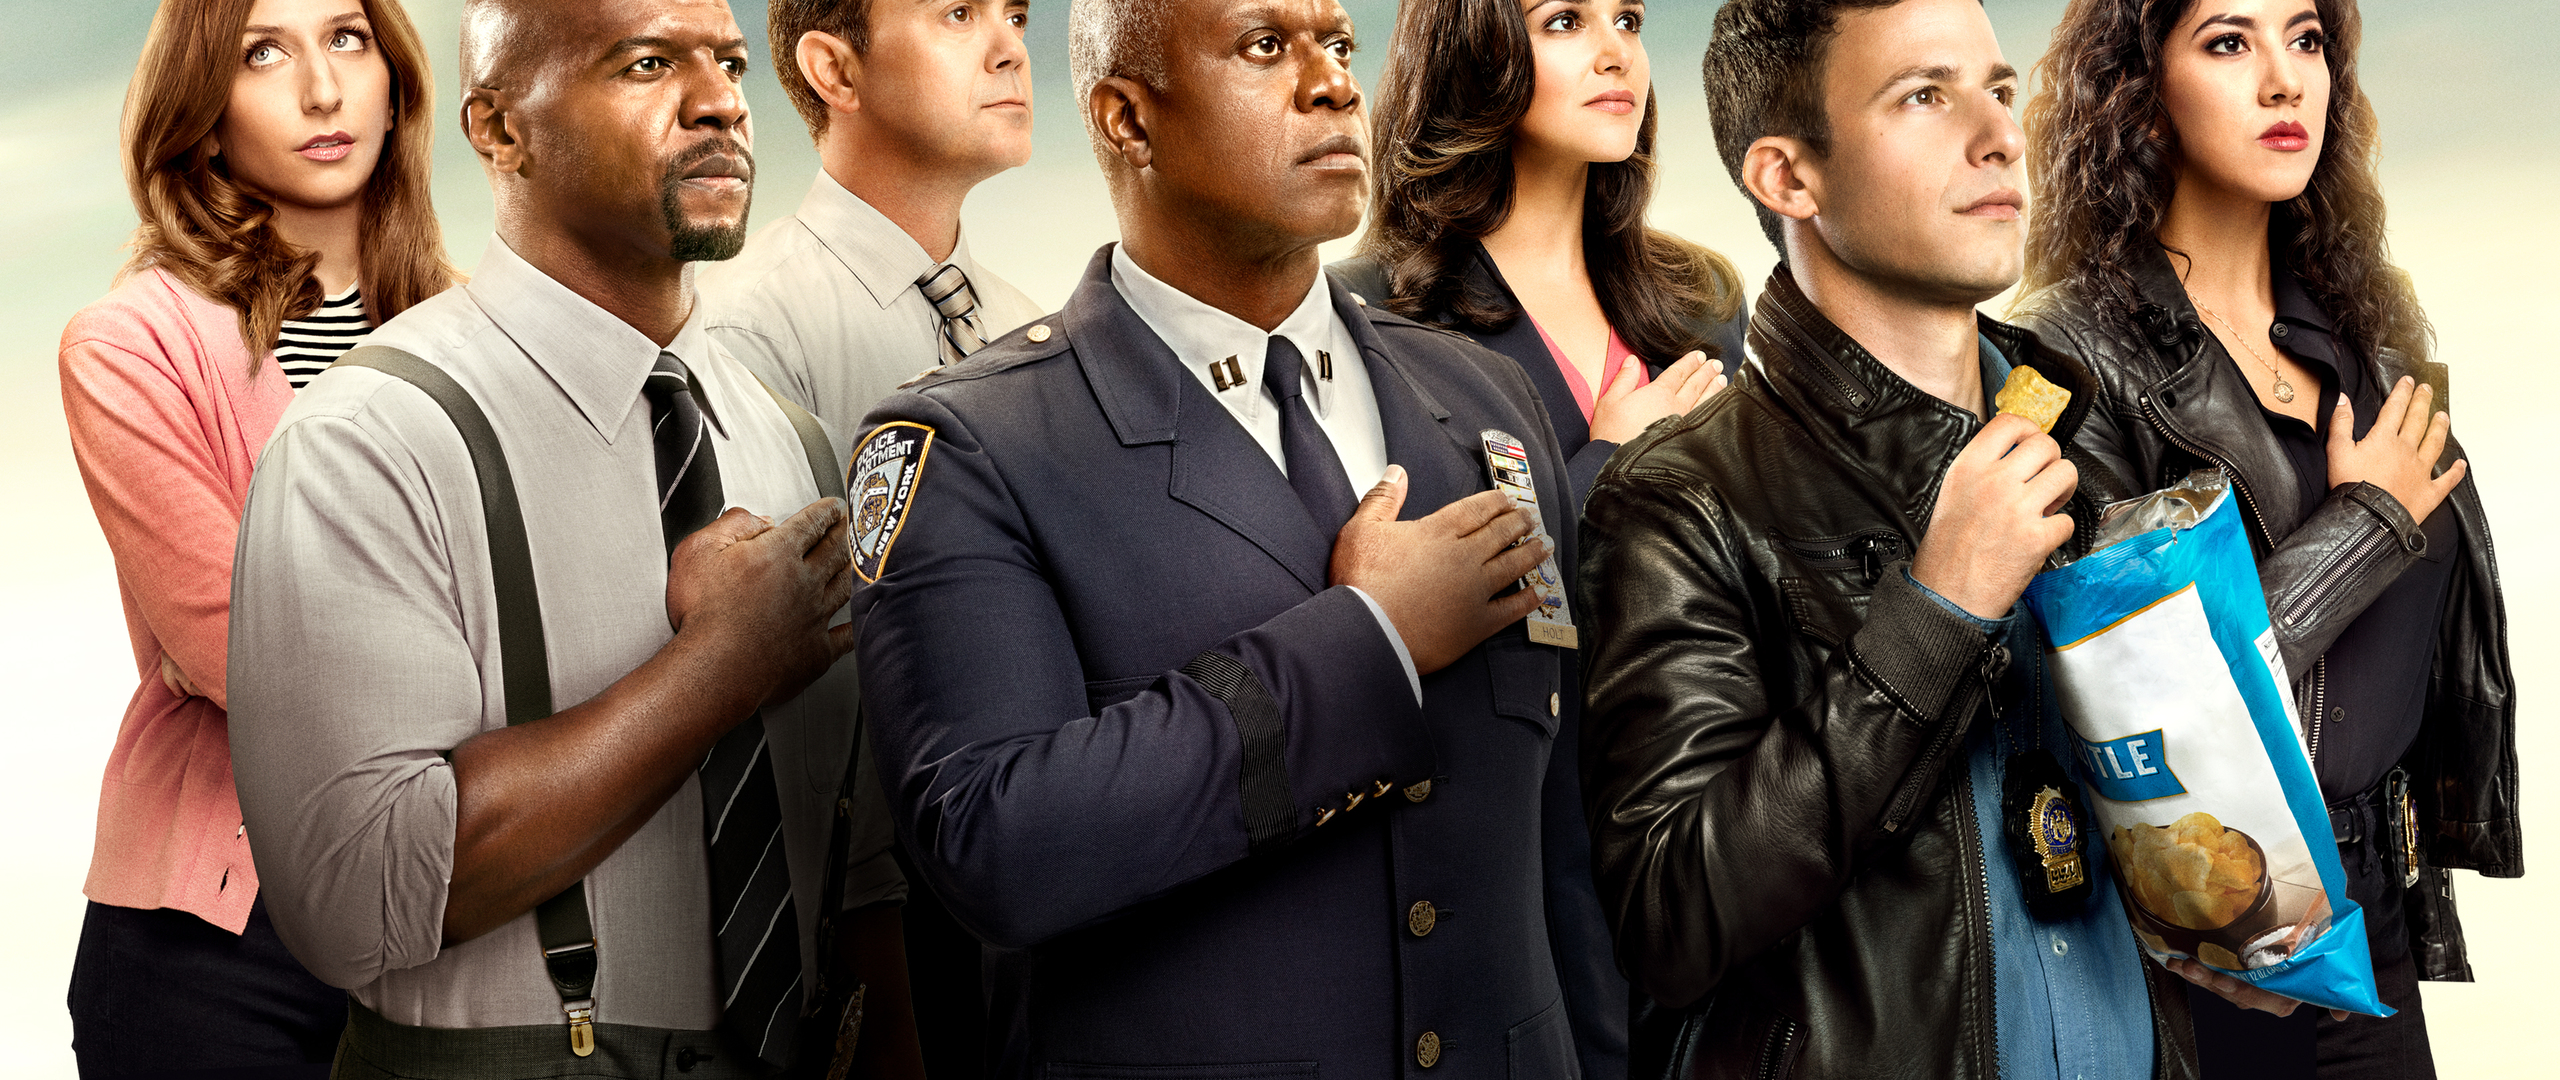 brooklyn-nine-nine-sc.jpg